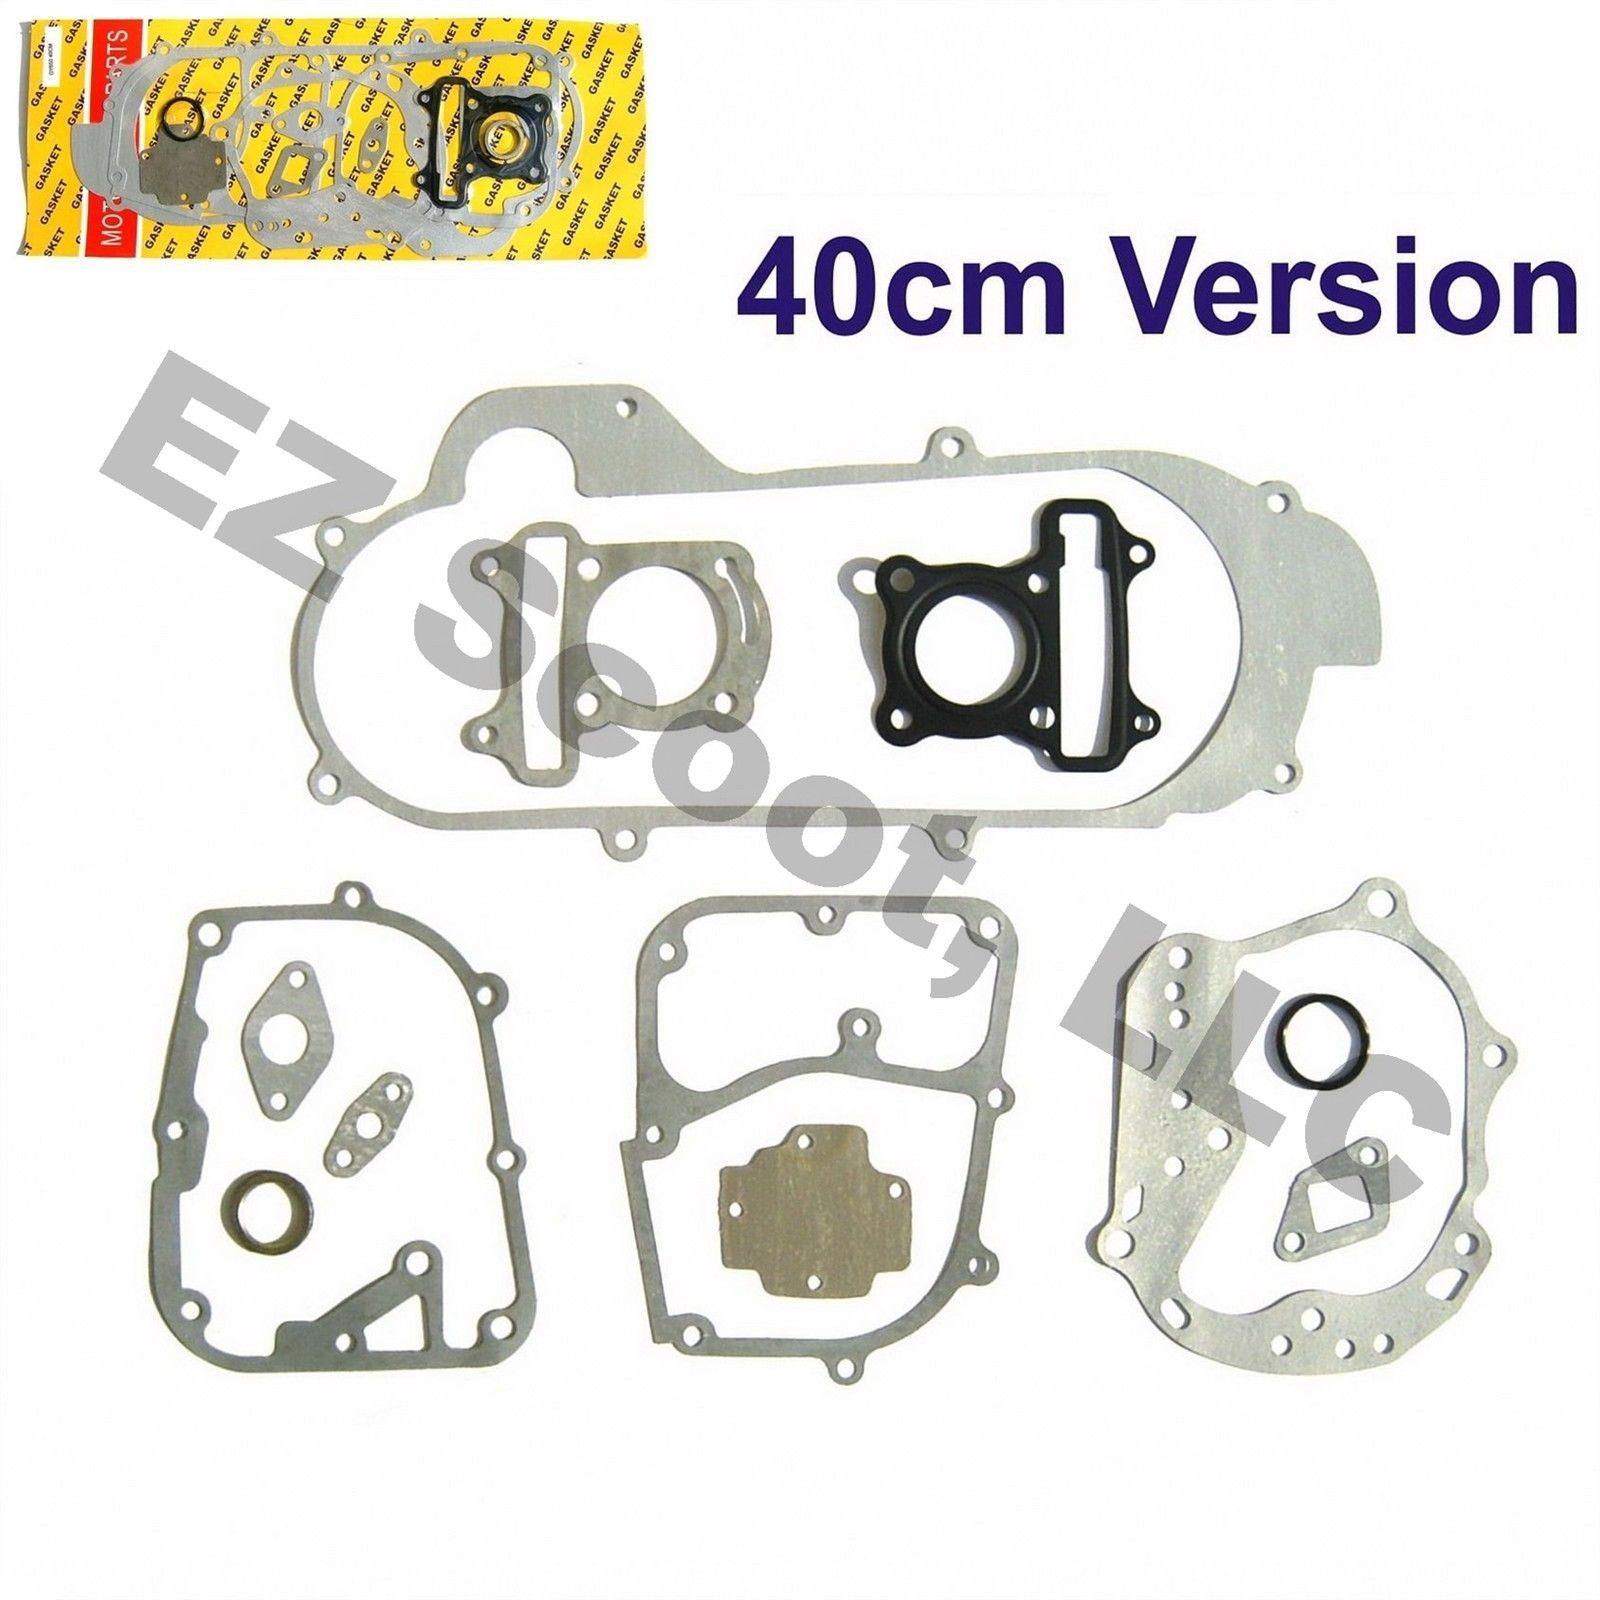 hight resolution of complete engine gasket set 50cc 40cm gy6 4 stroke chinese scooter 139 qma b ebay